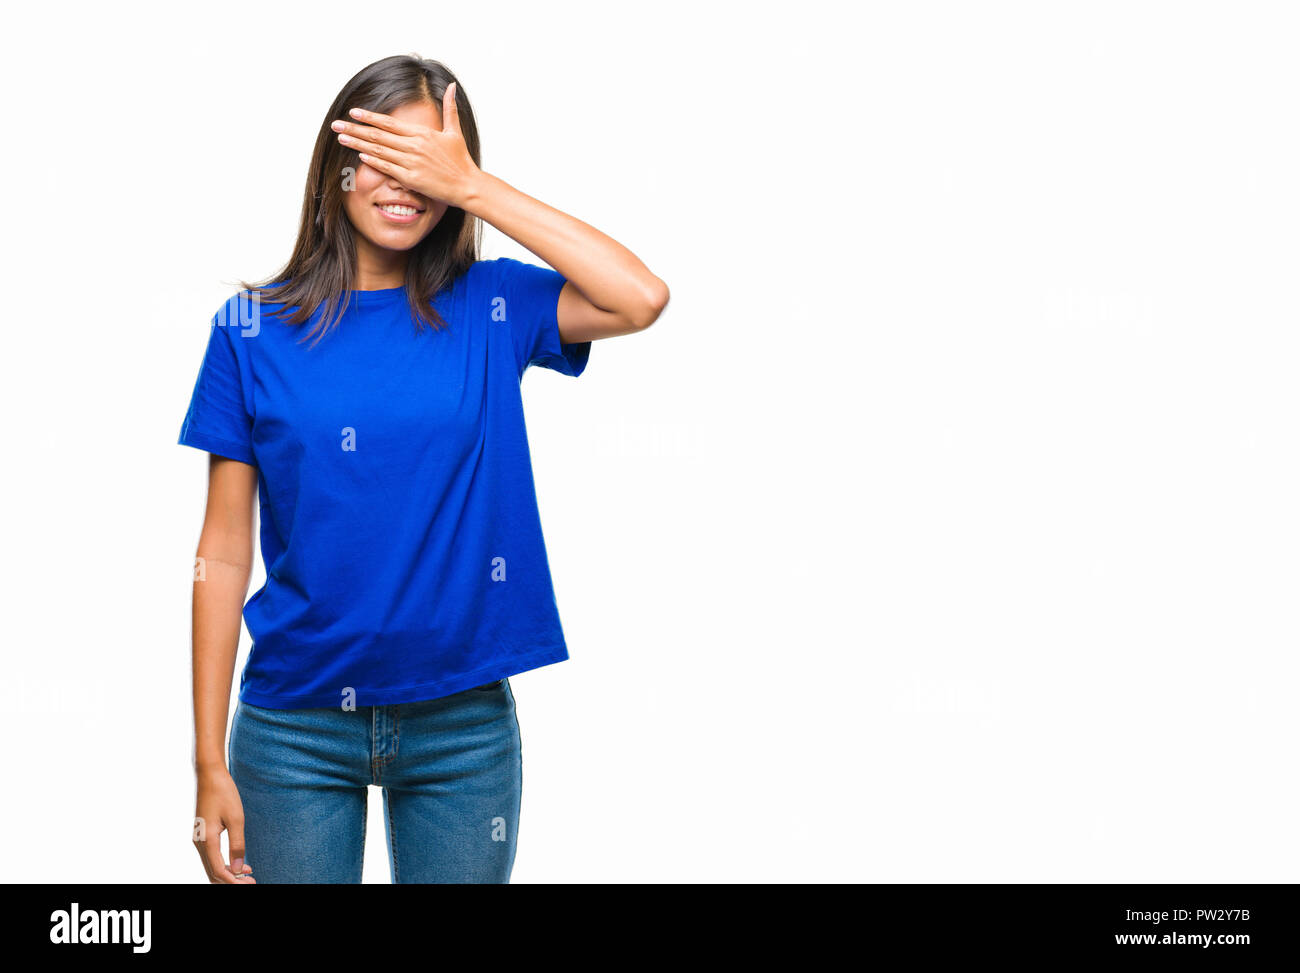 Young asian woman over isolated background smiling and laughing with hand on face covering eyes for surprise. Blind concept. - Stock Image